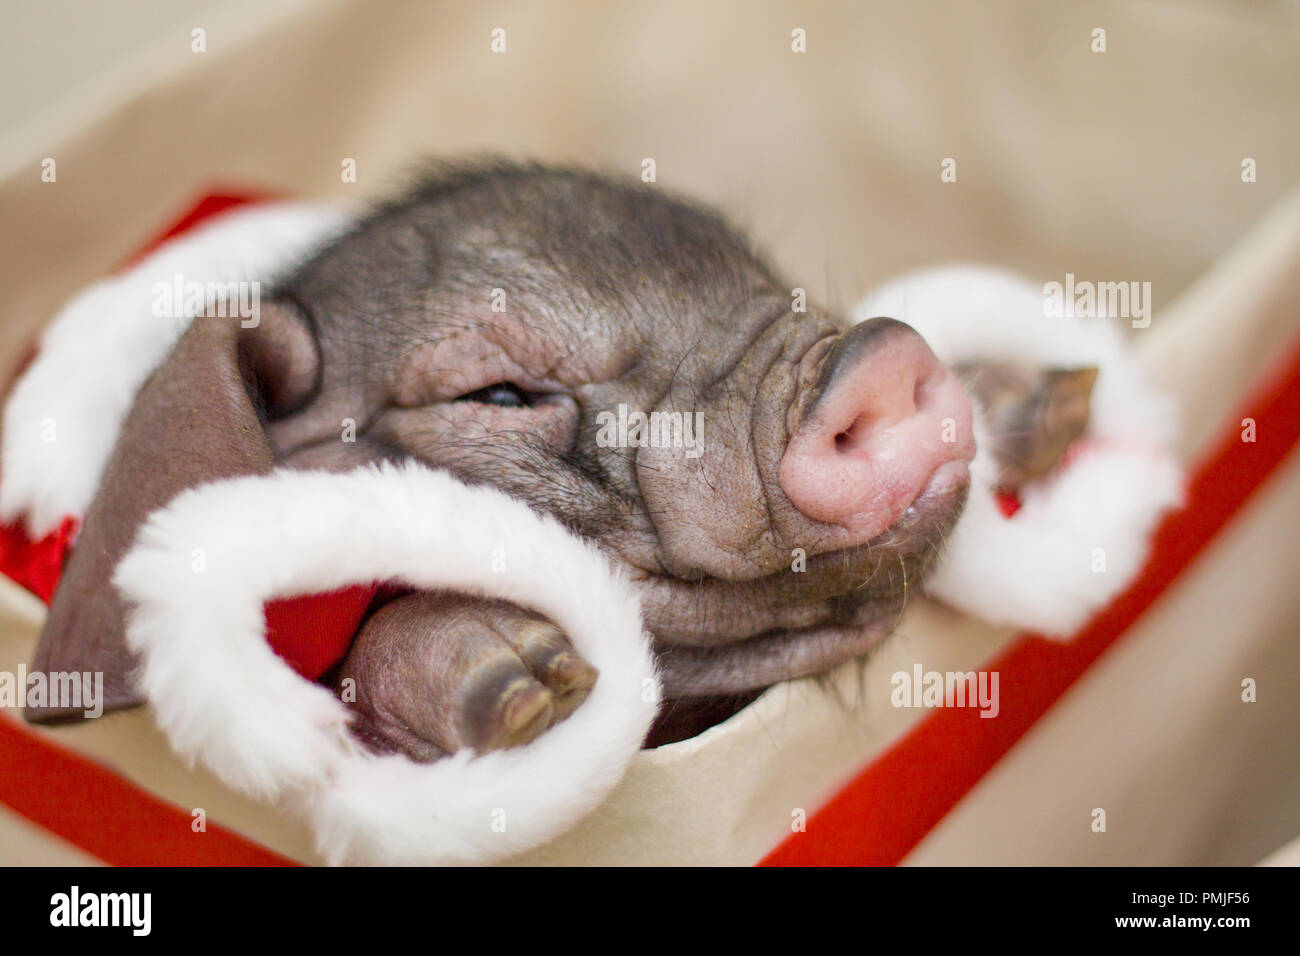 Christmas and new year card with cute newborn santa pig in gift present box. Decorations symbol of the year Chinese calendar. fir on background. Holid - Stock Image